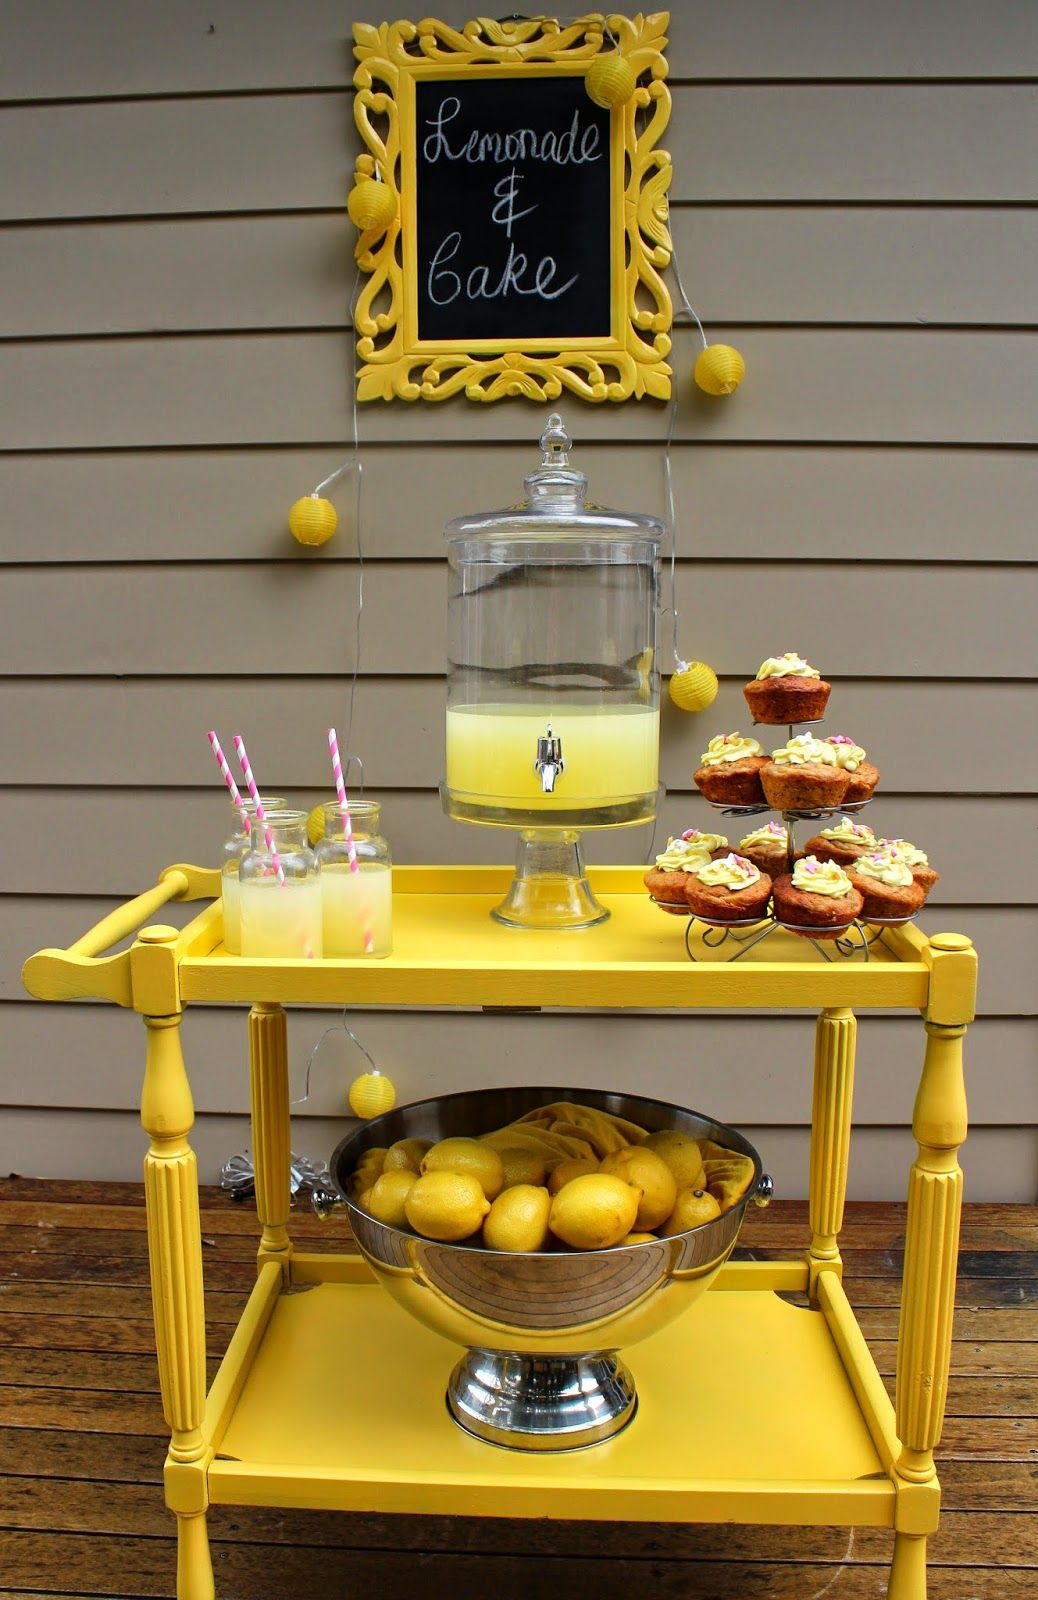 How to Make an Easy Lemonade Stand and A Paint Giveaway | Desire Empire